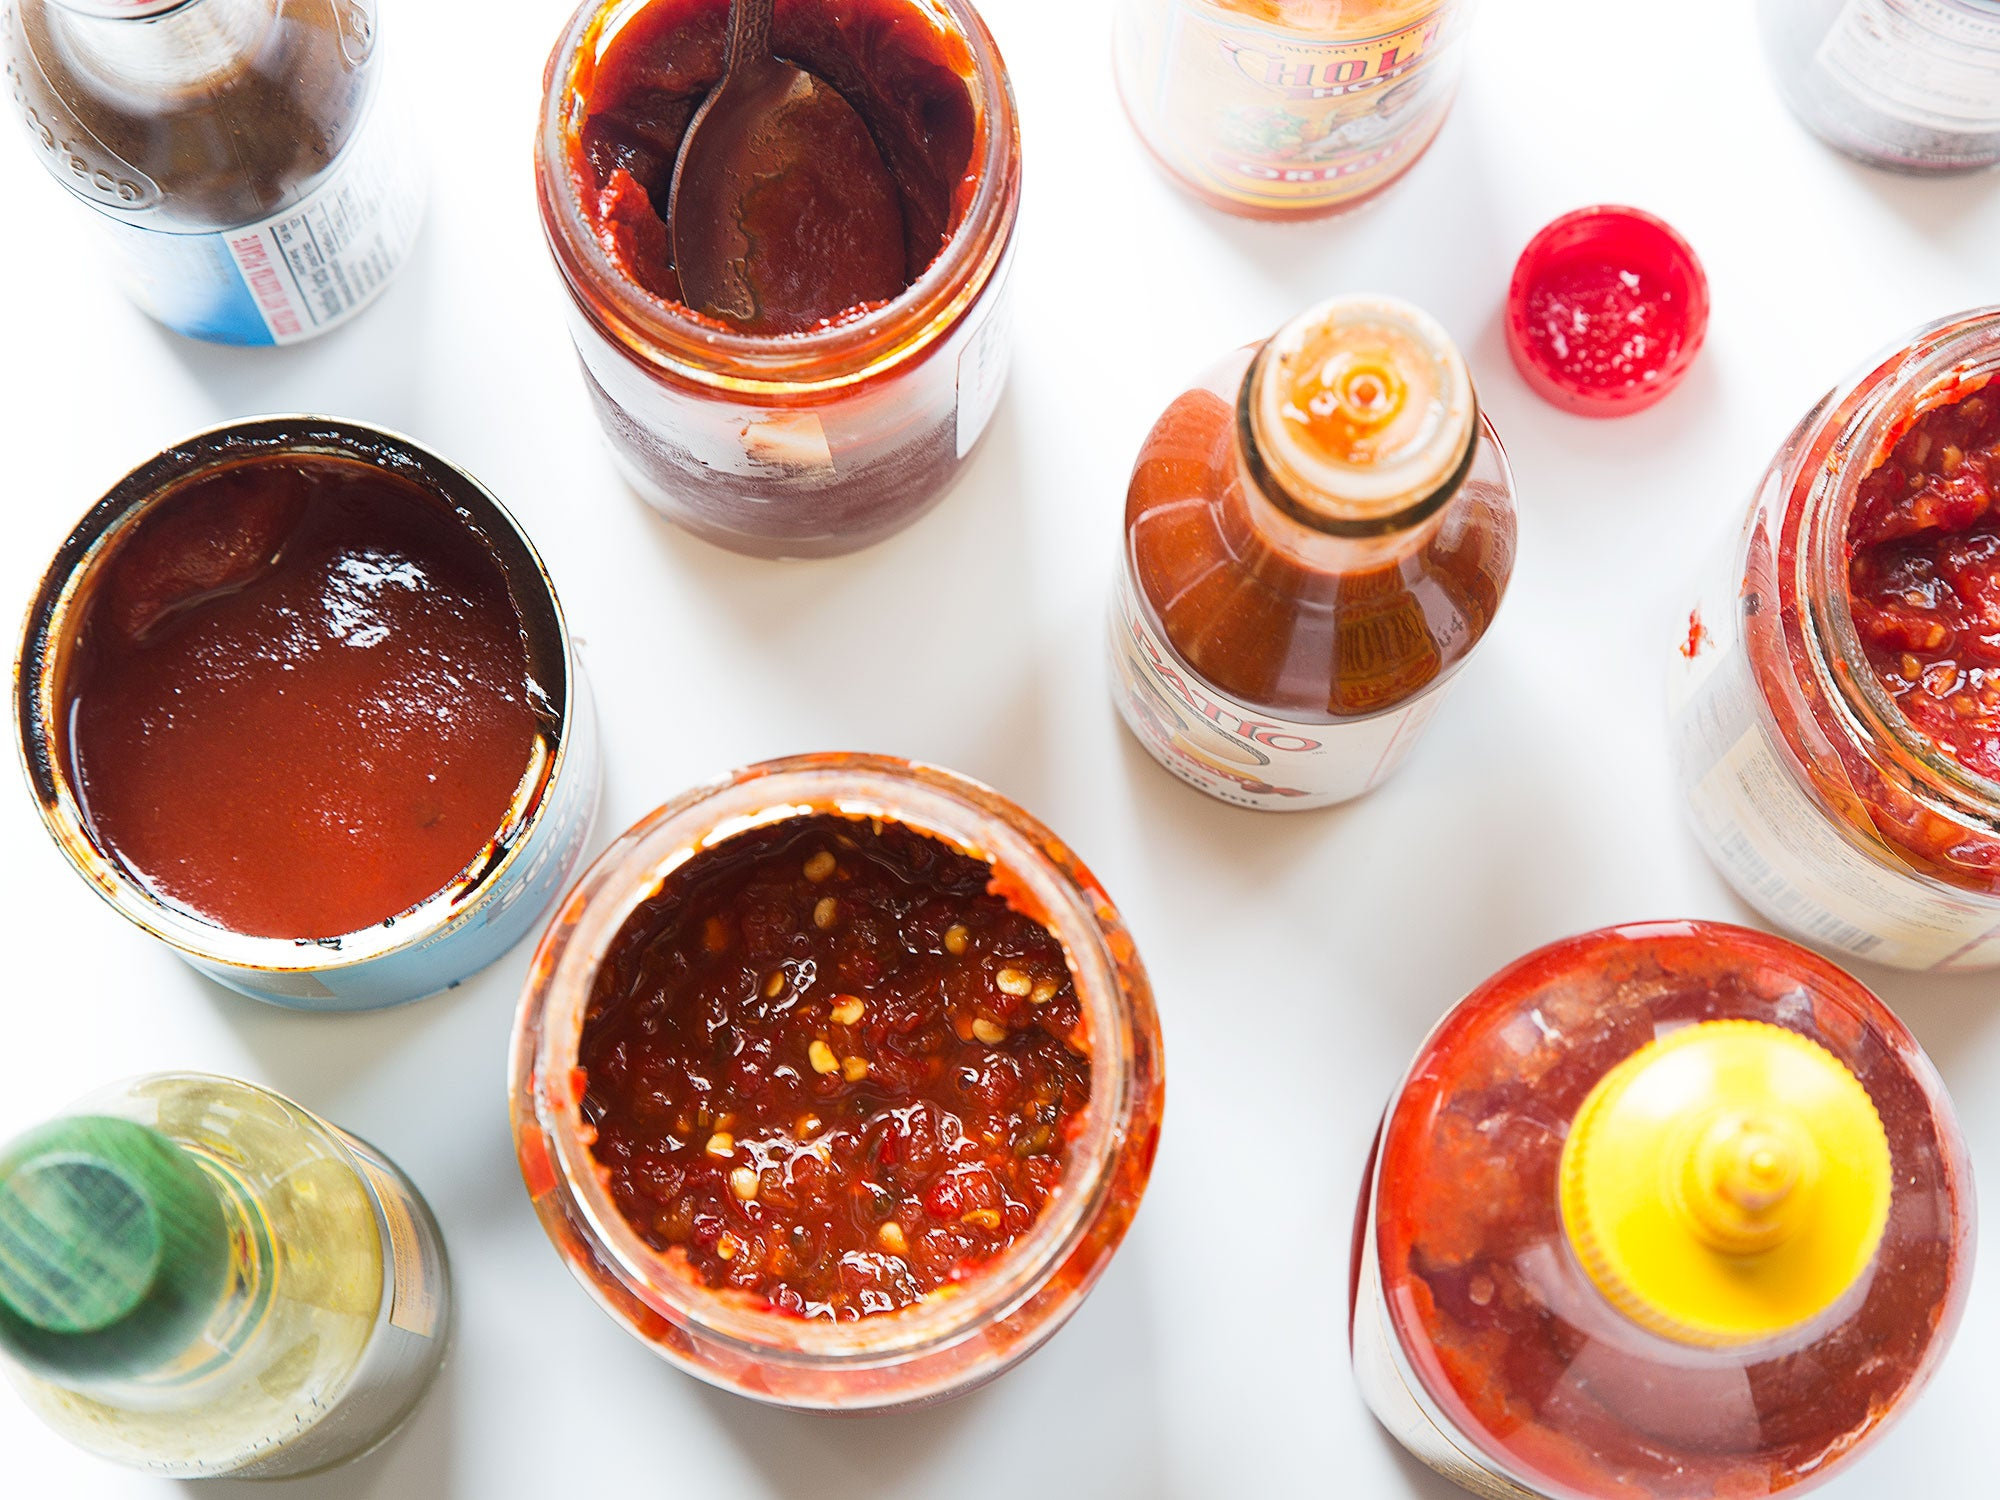 The Hot List: 13 Hot Sauces From Around the World That Deserve a Spot in Your Pantry